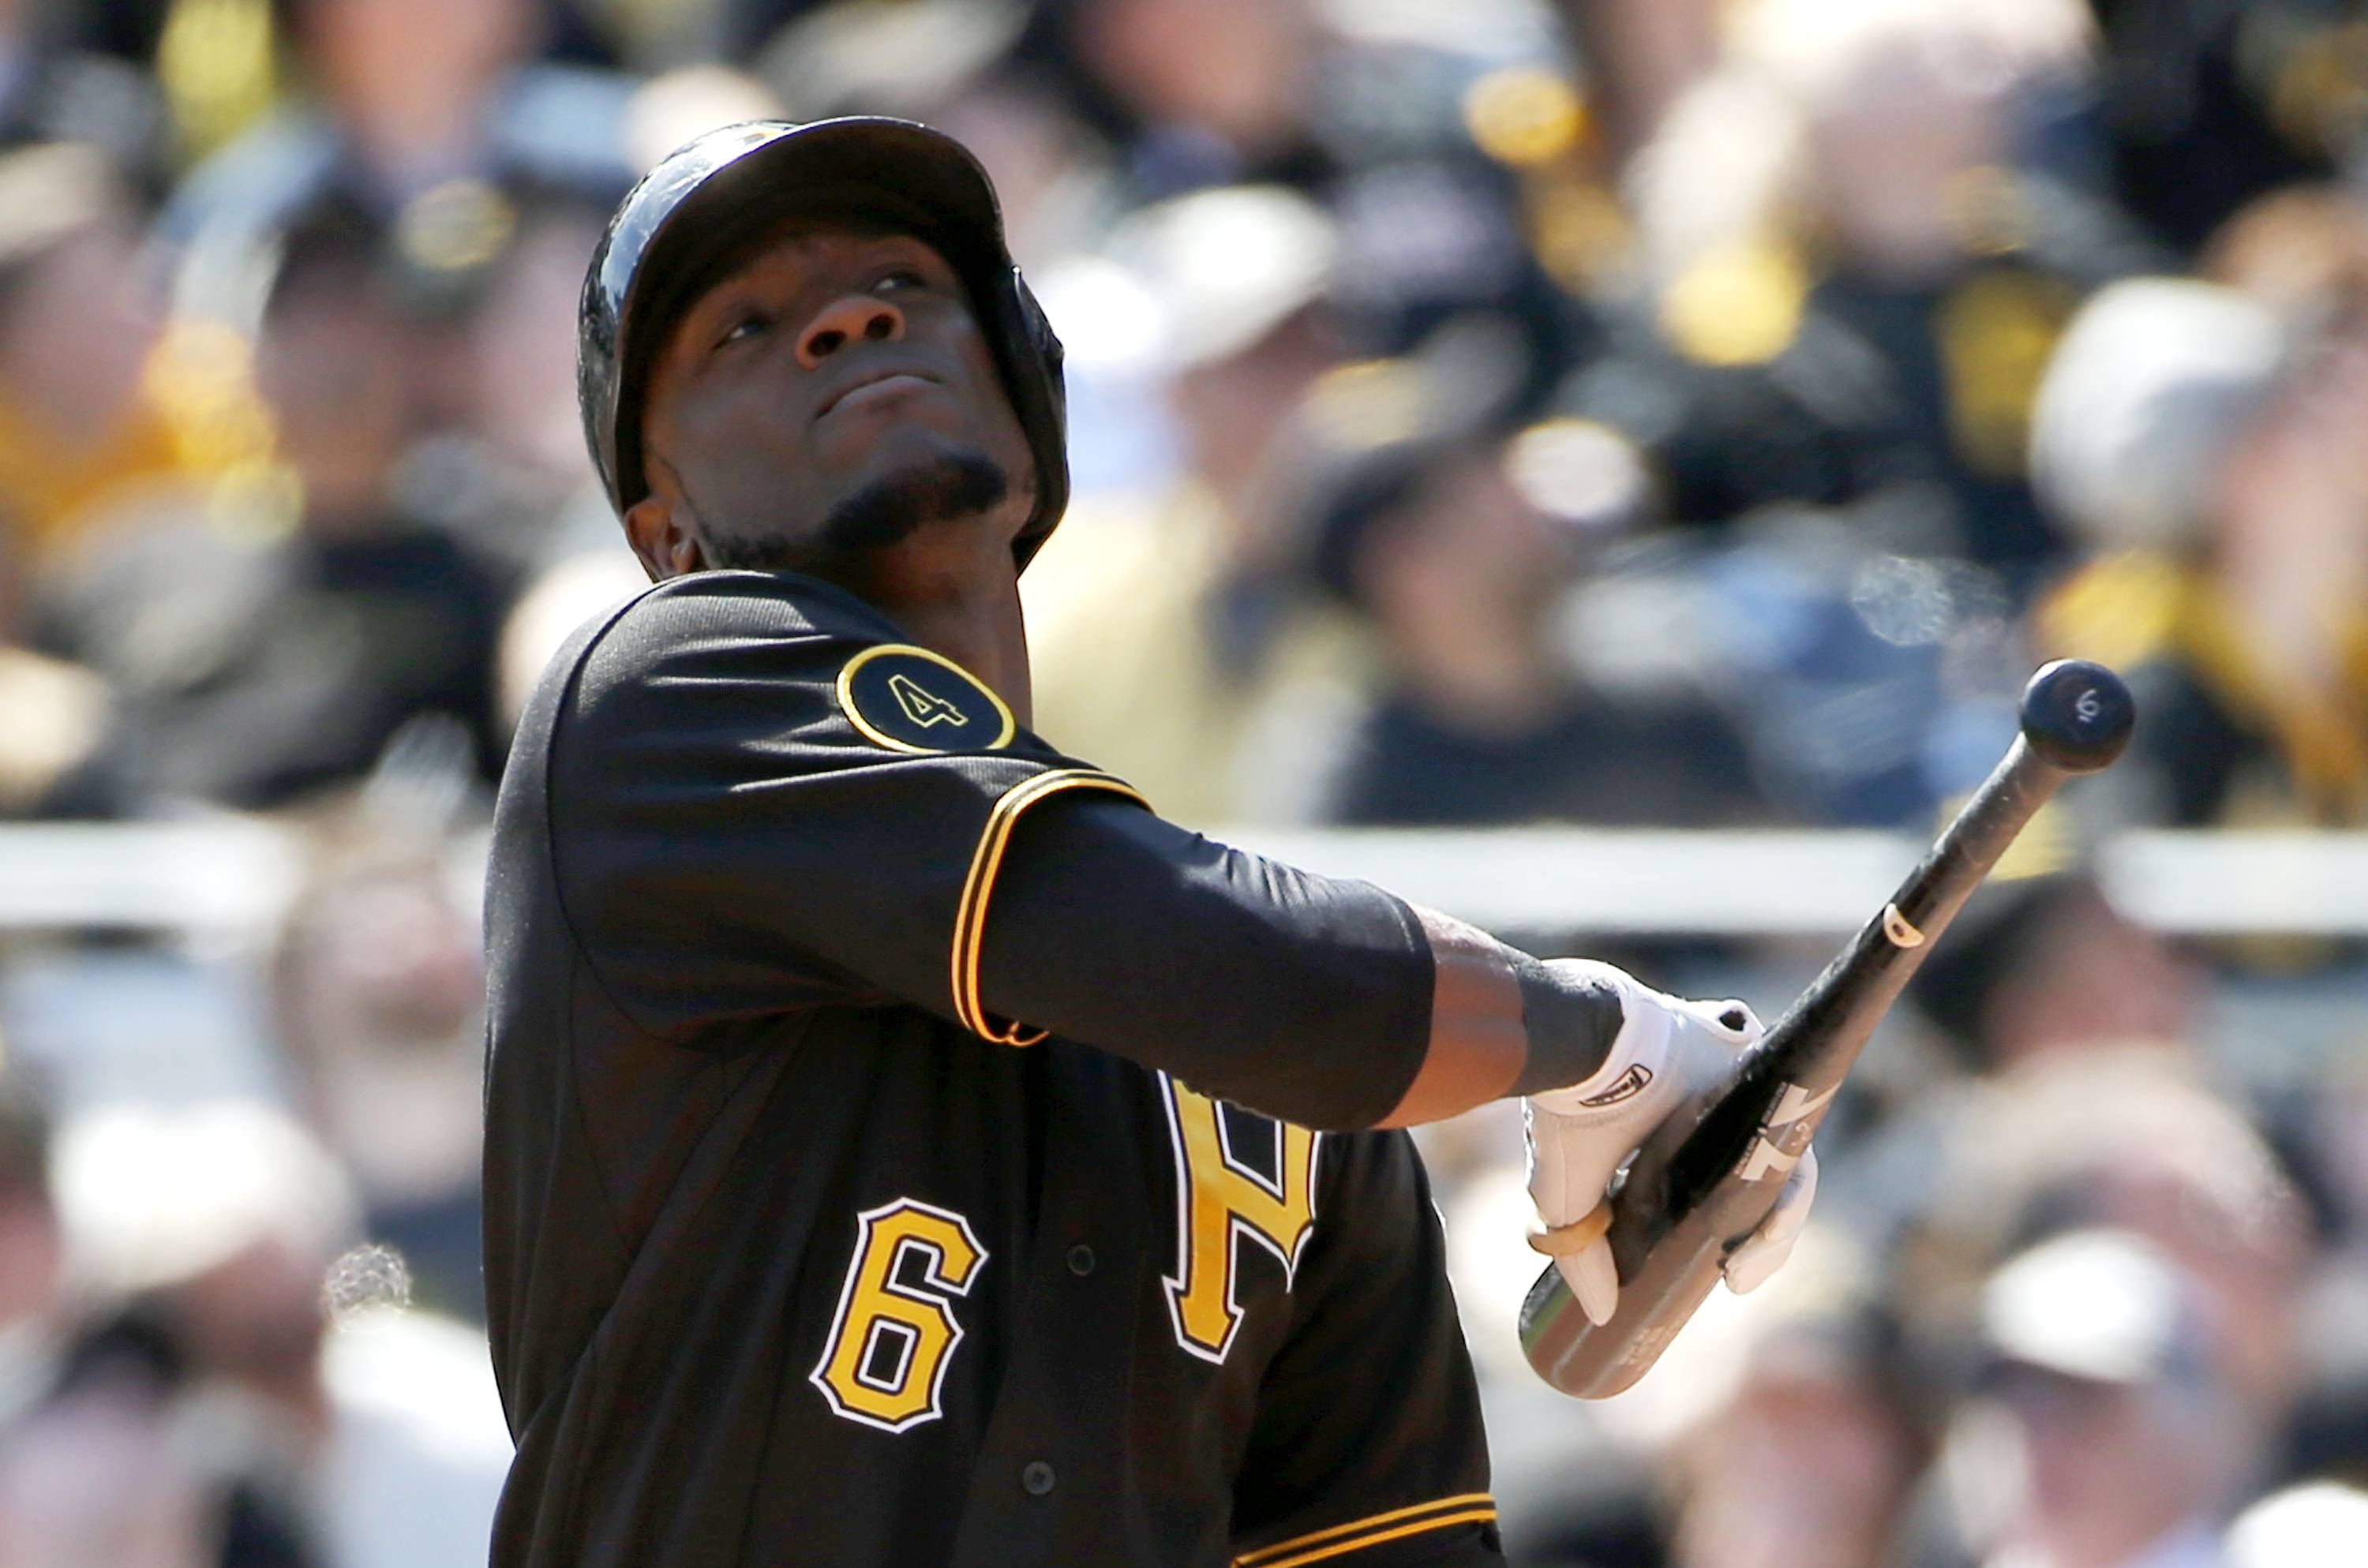 Pittsburgh Pirates' Starling Marte looks up after making a swinging strike in the fourth inning.